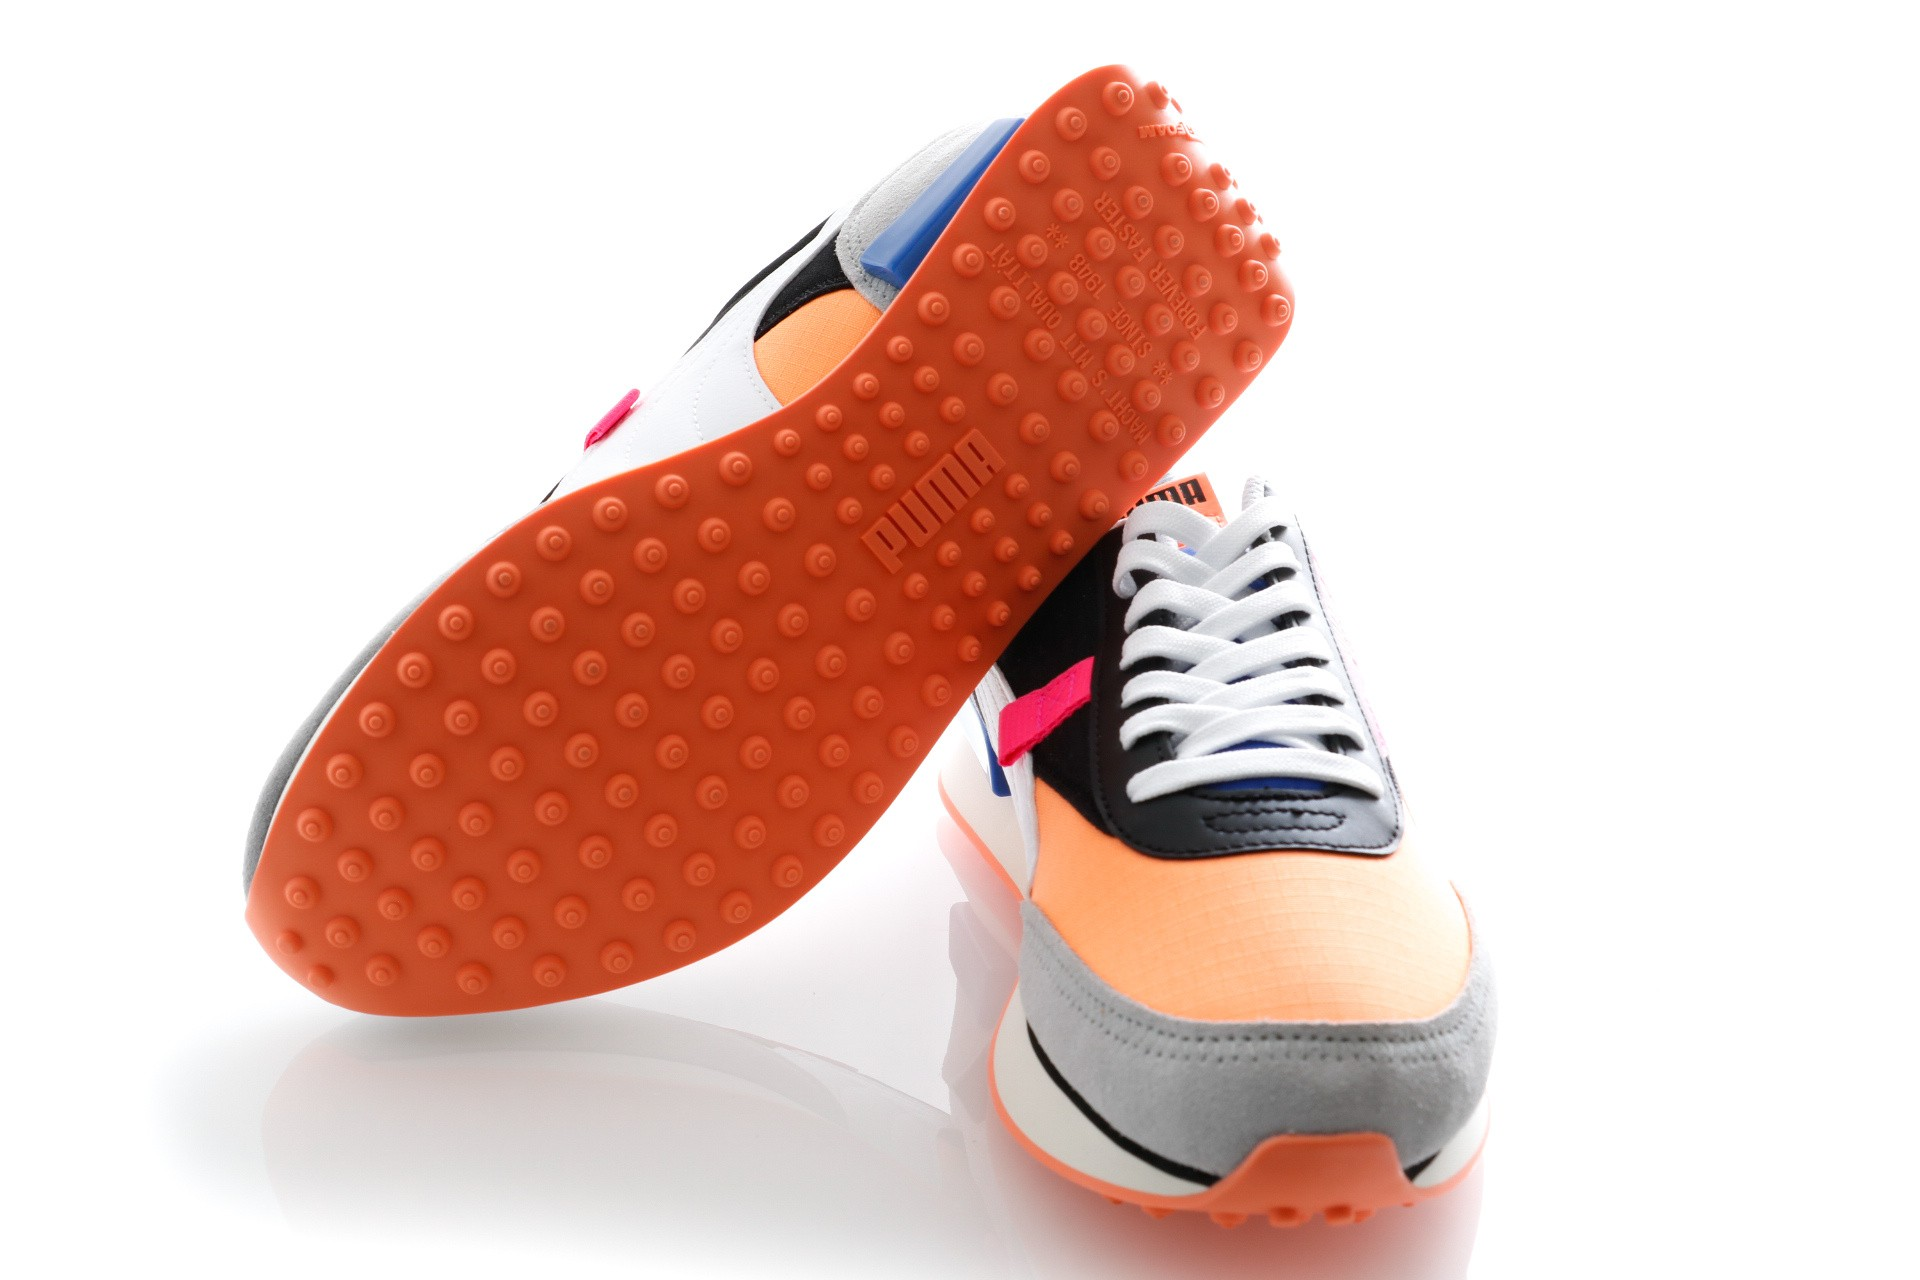 Afbeelding van Puma Sneakers Rider Play On Puma Black-Fizzy Orange-High Rise 371149 04